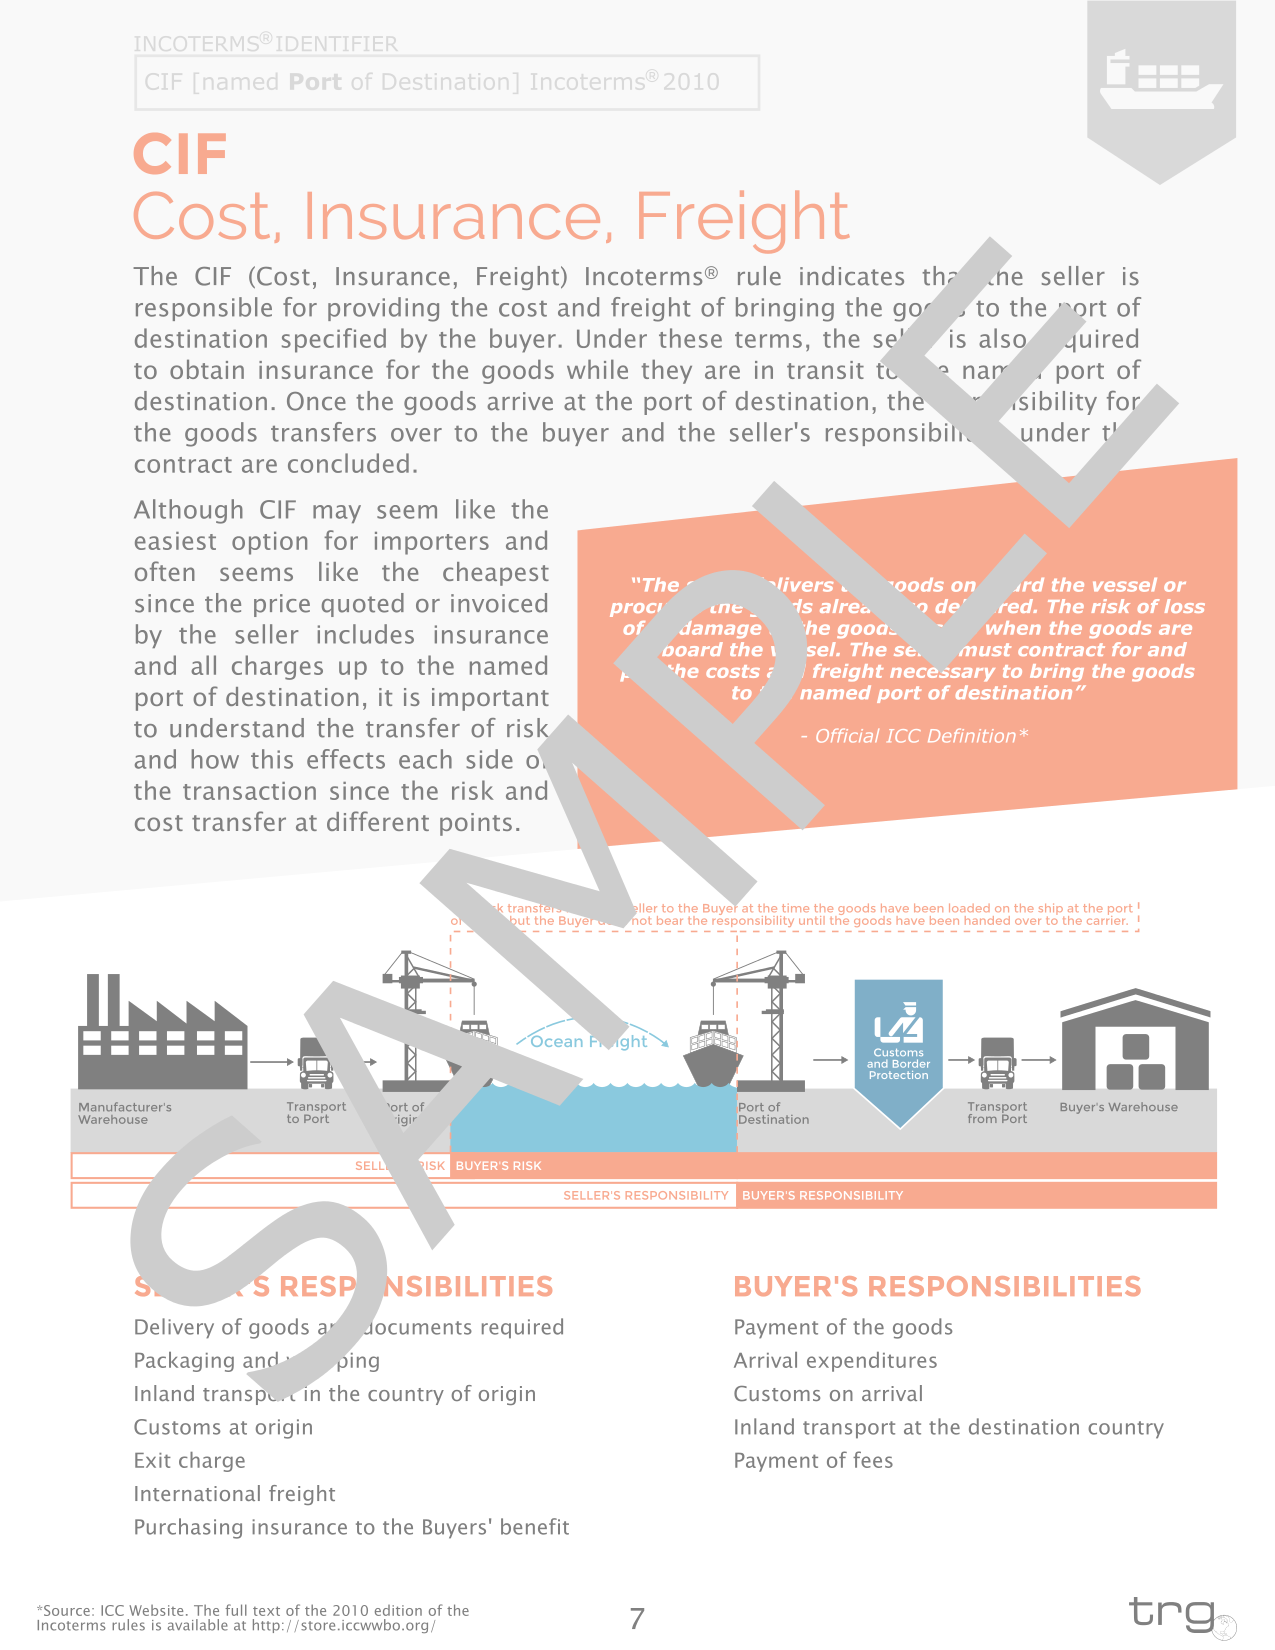 Trade Risk Guaranty provides an Incoterms Desk Reference for U.S. Importers.